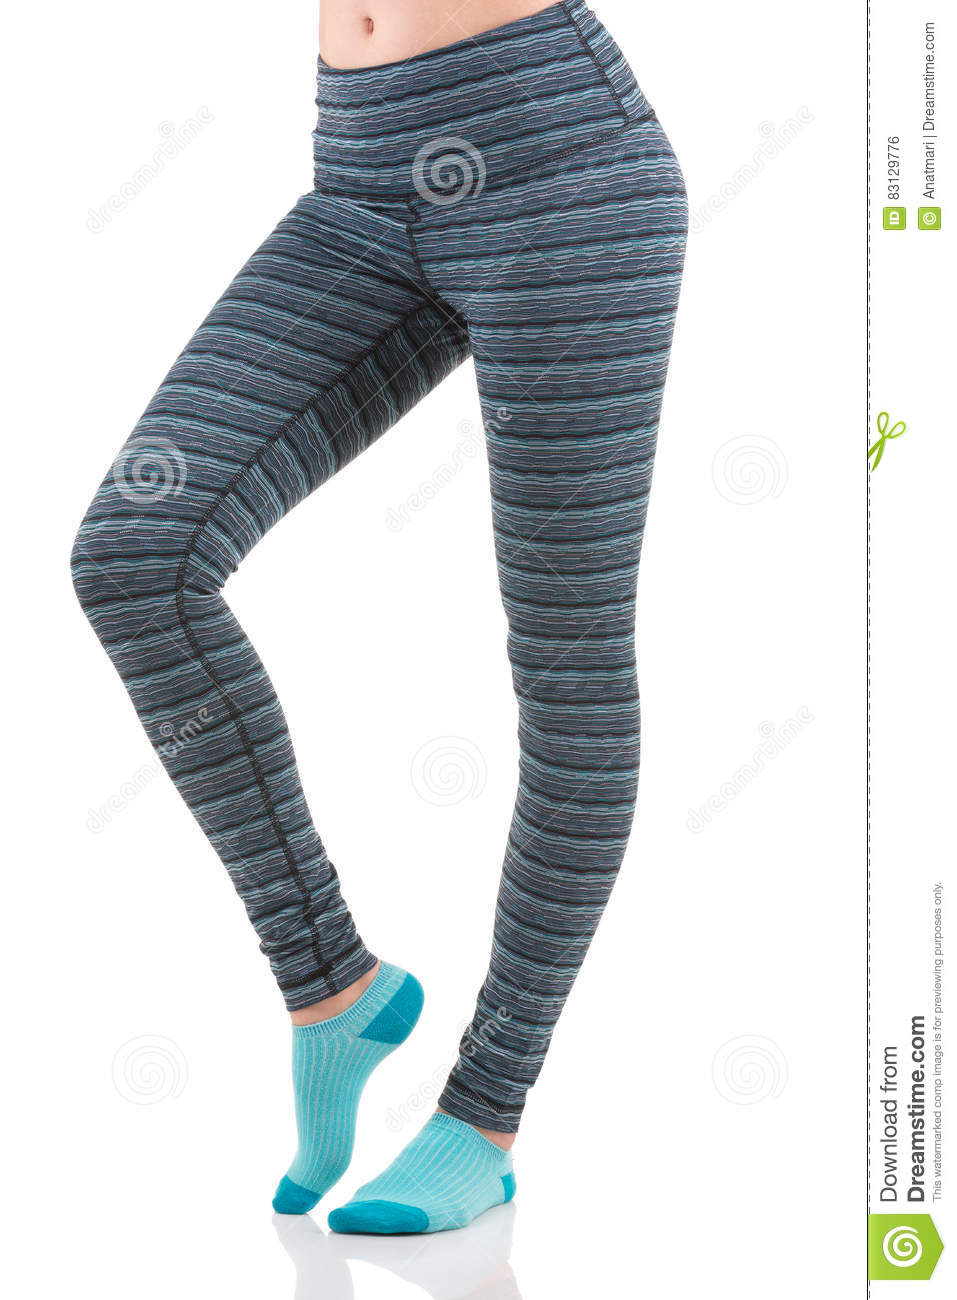 f99ed1a40ef6d Close up side view of fit woman legs warming up in colorful striped sports  leggings wearing blue socks on white isolated background